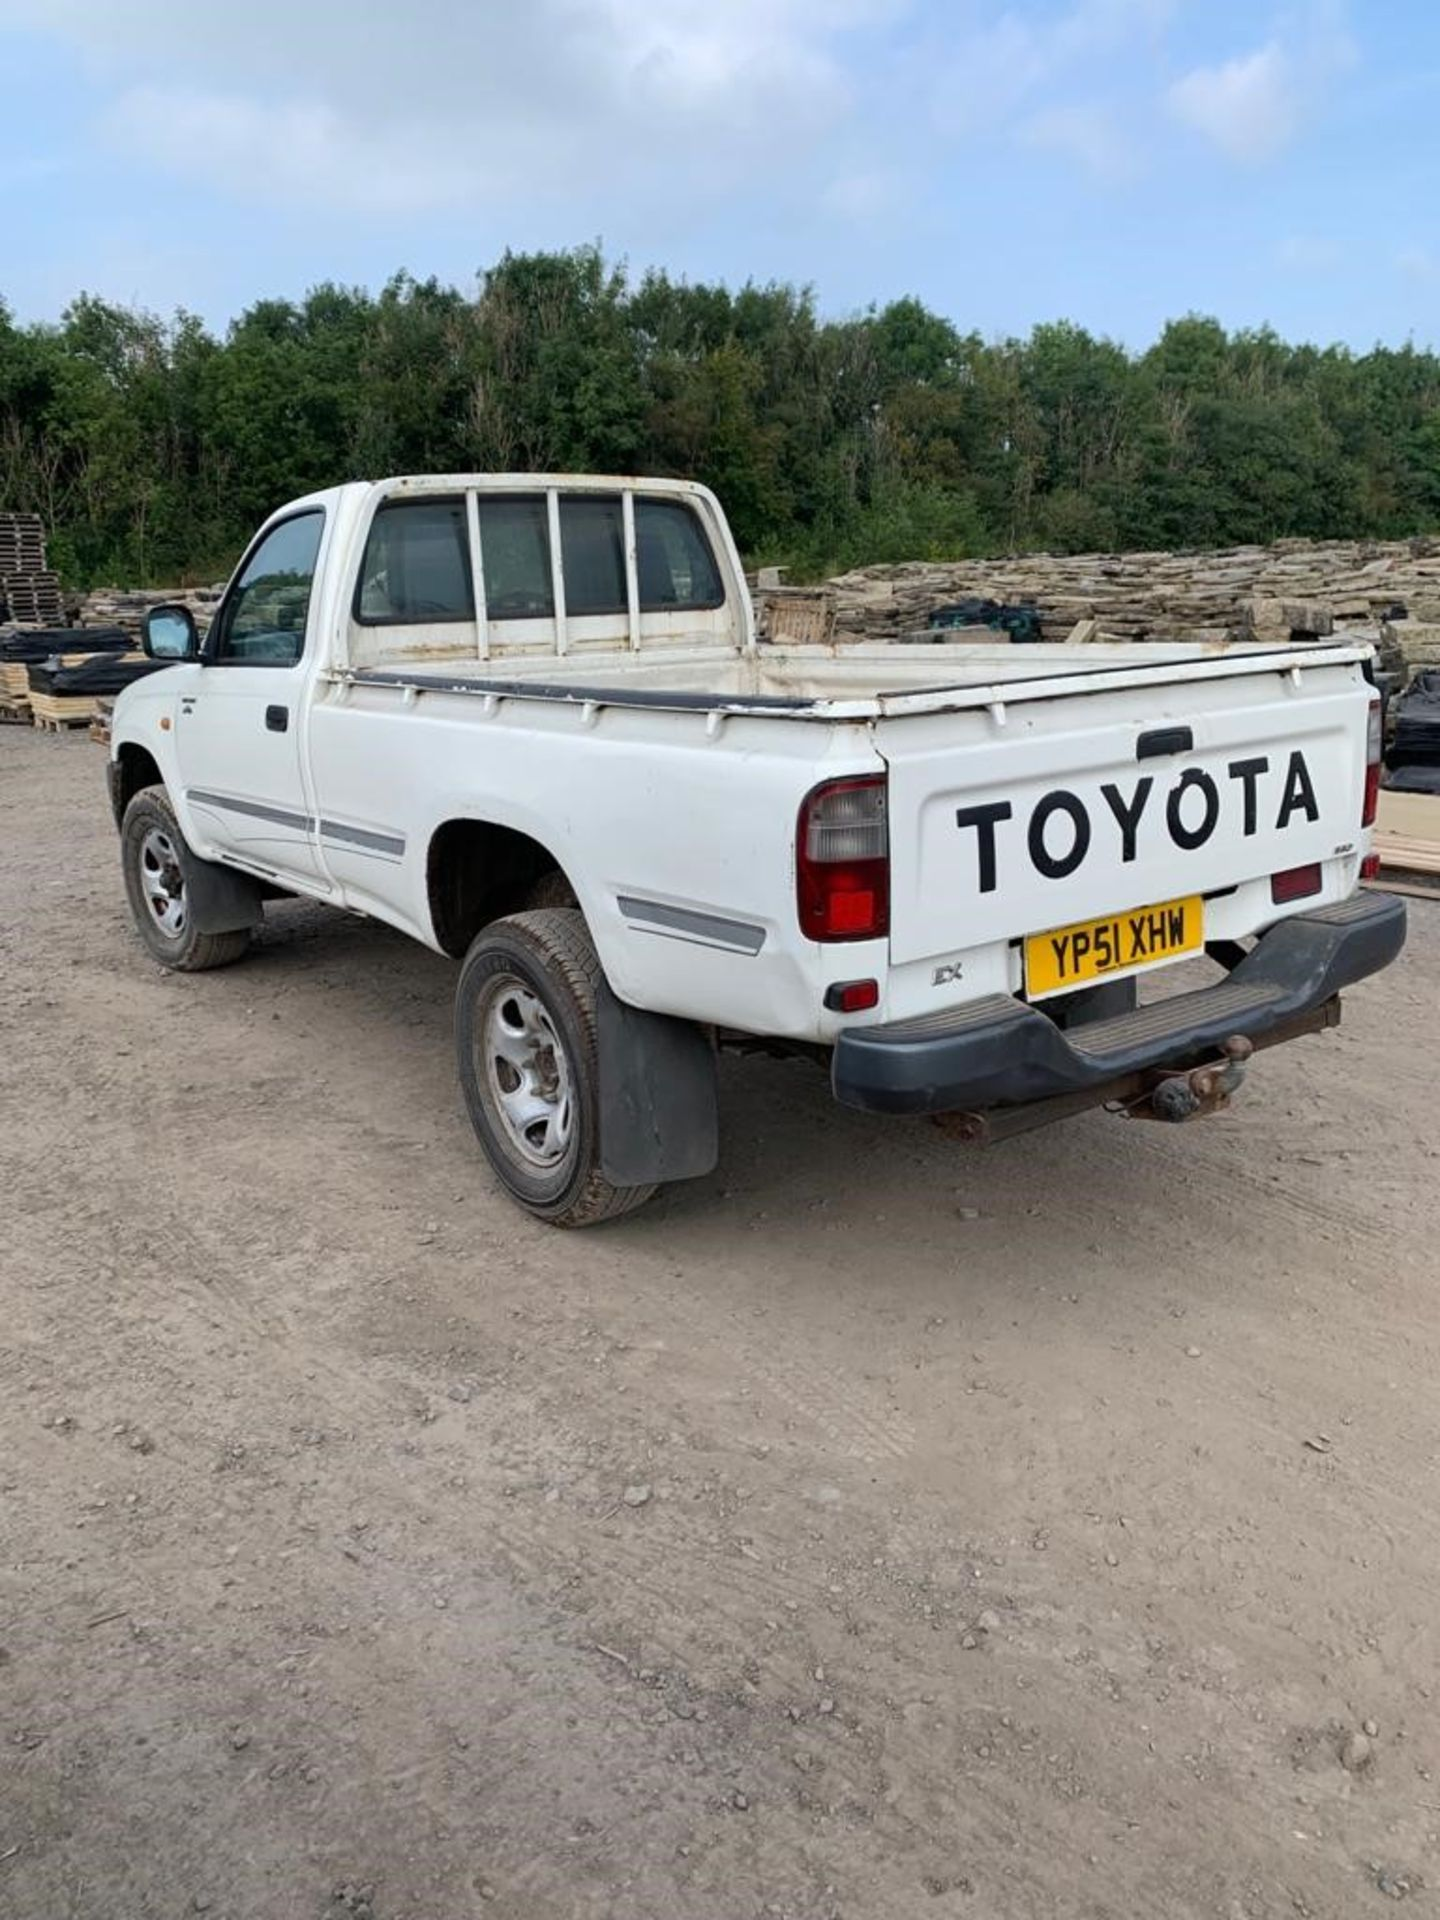 ToyotaHilux 2.5 2504WD MWB Diesel Pickup Truck, registration no.YP51 XHW, date first registered - Image 3 of 6